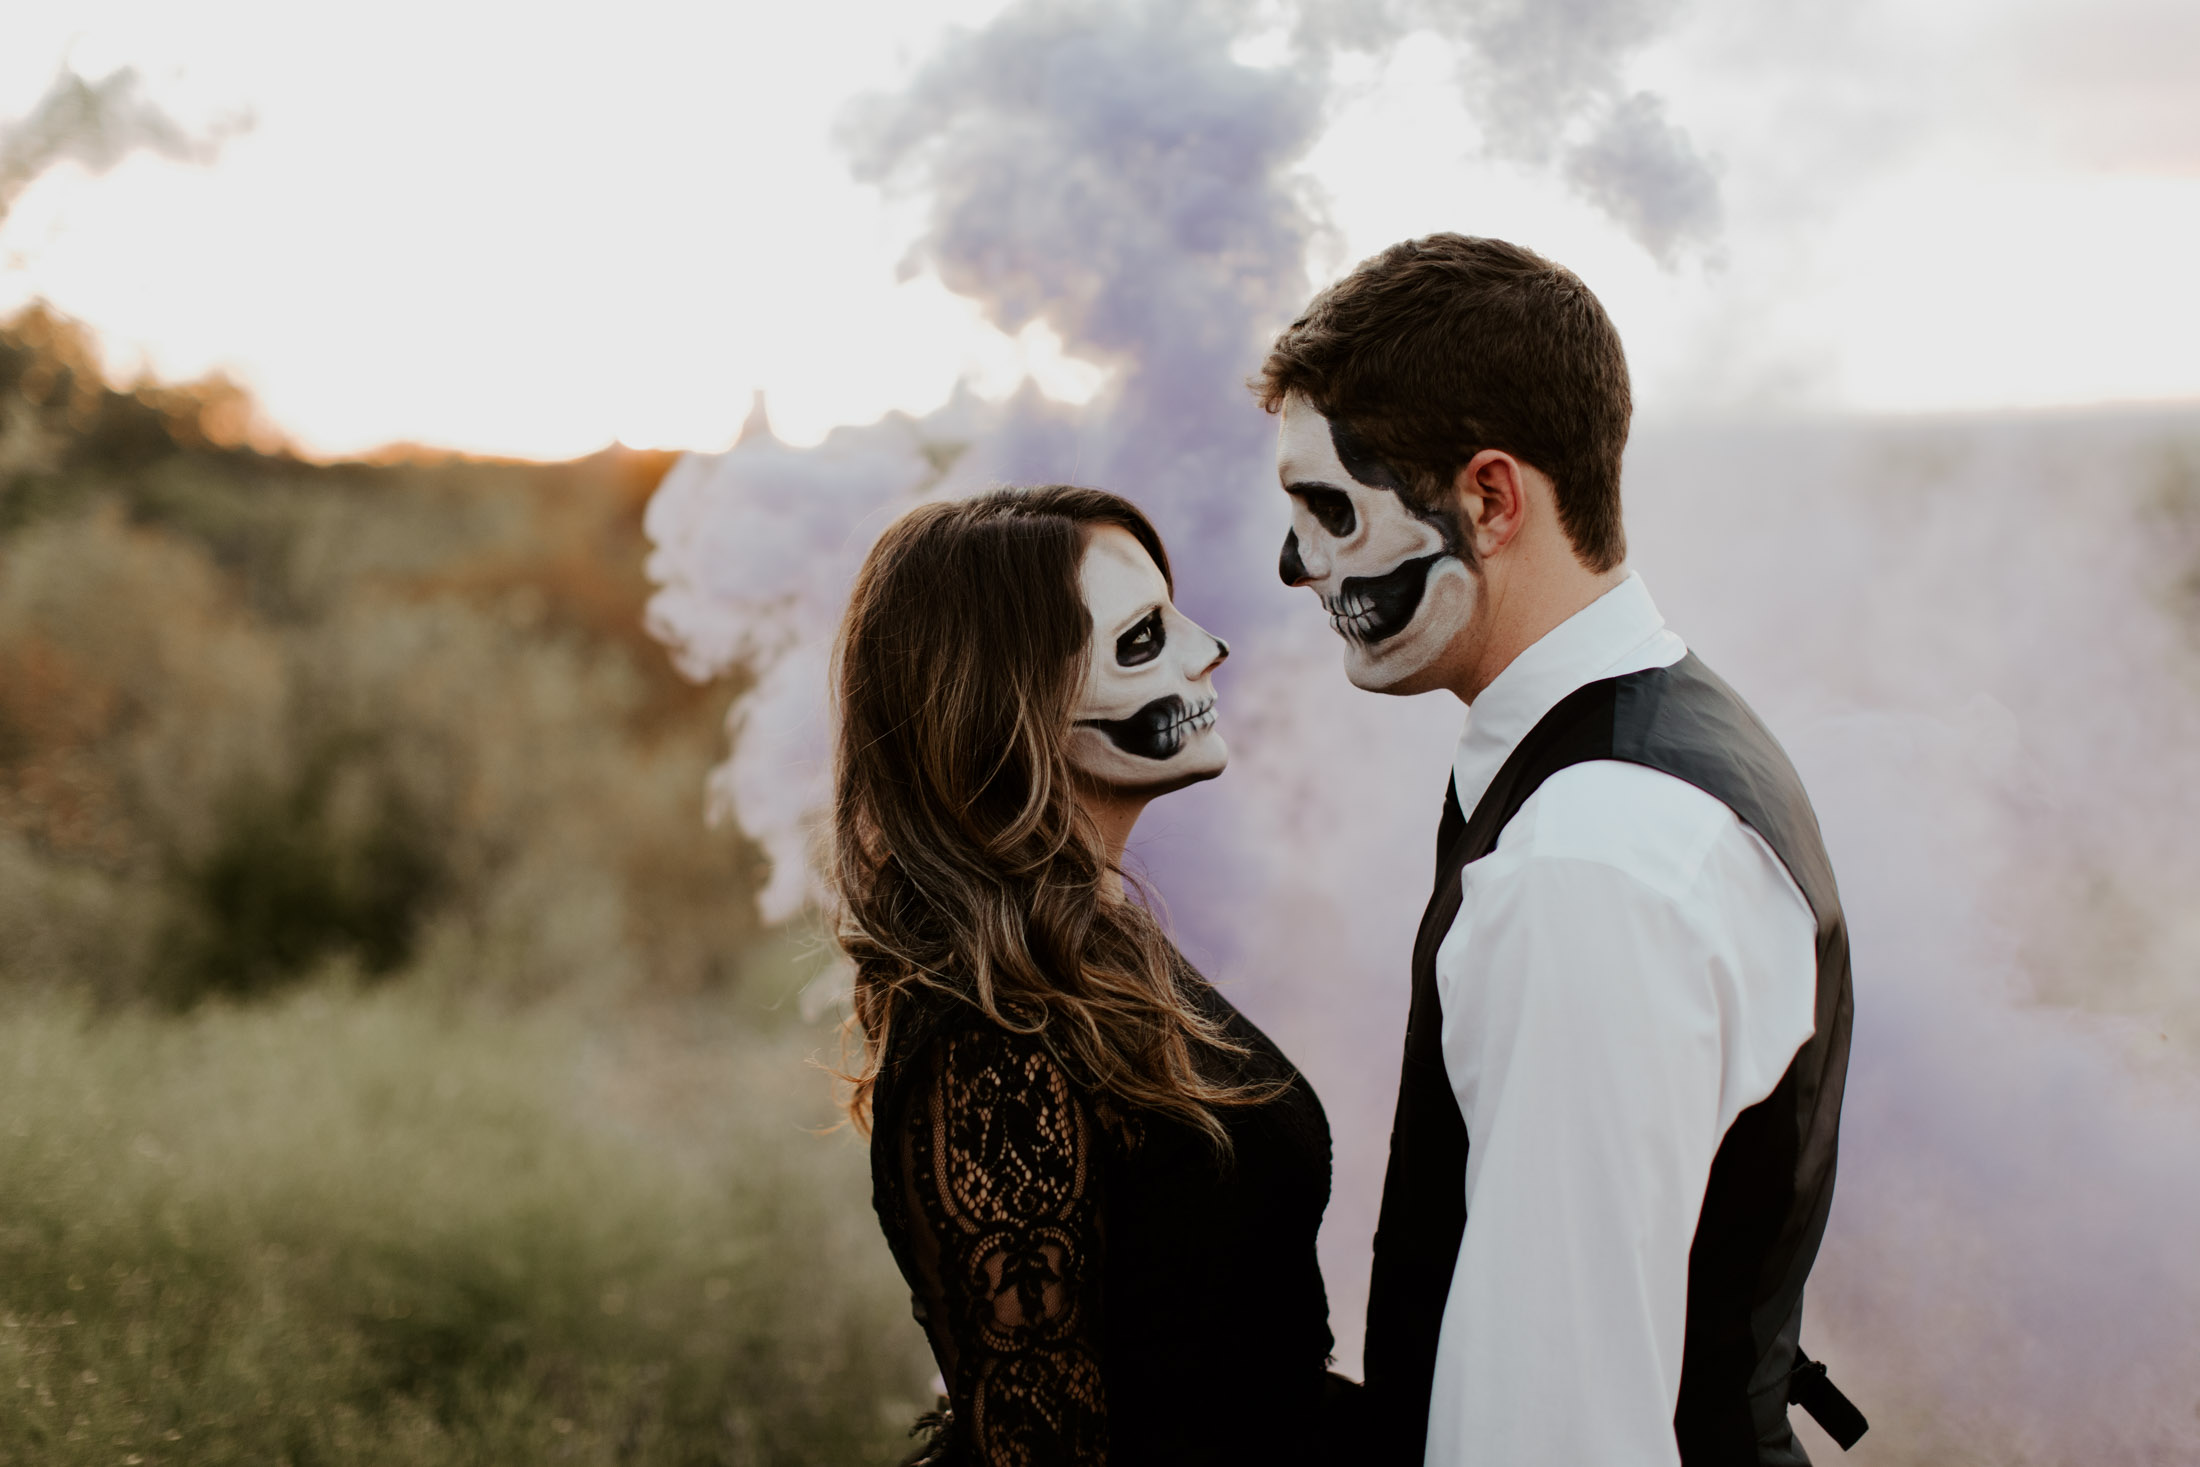 halloween themed couple looking t each other with purple smoke in the background